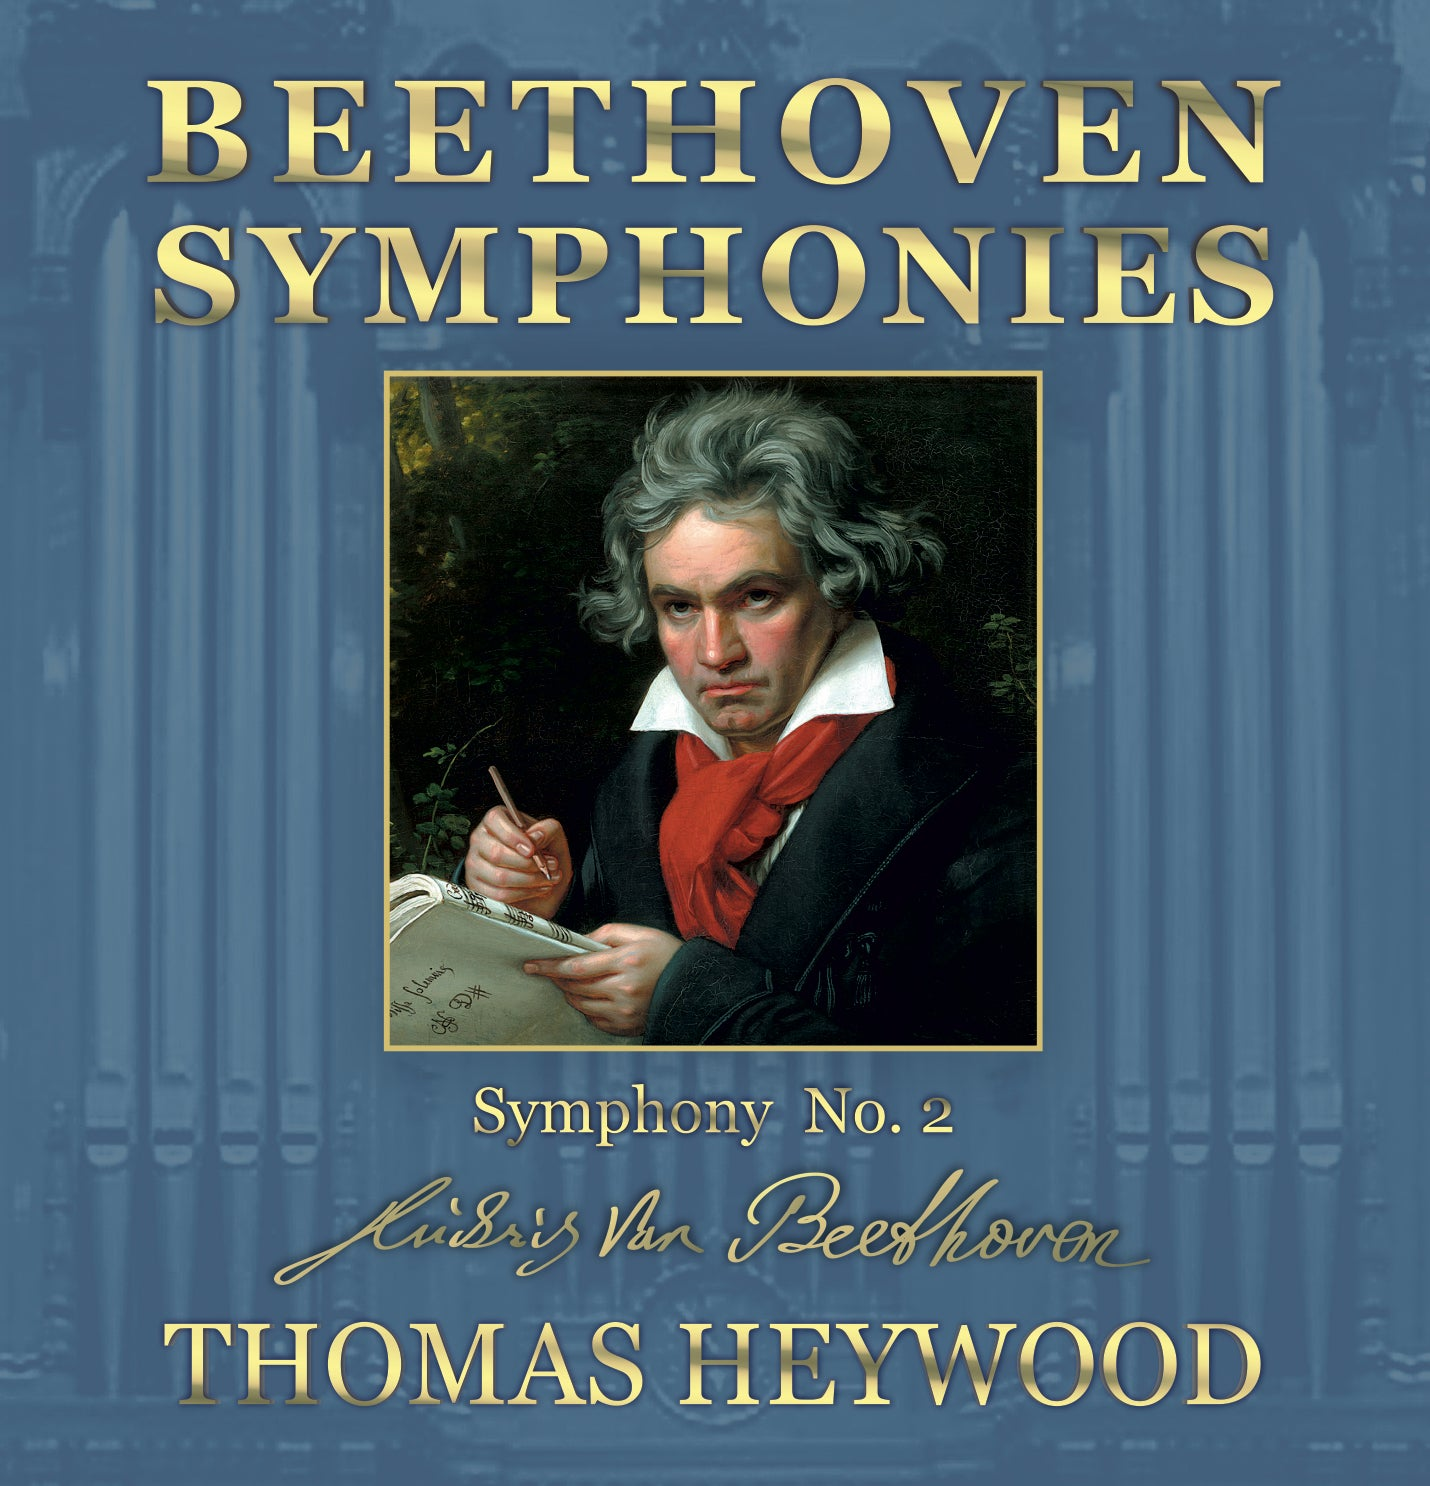 Beethoven/Heywood - Symphony No. 2 in D major, Op. 36 (MP3 Album) | Thomas Heywood | Concert Organ International